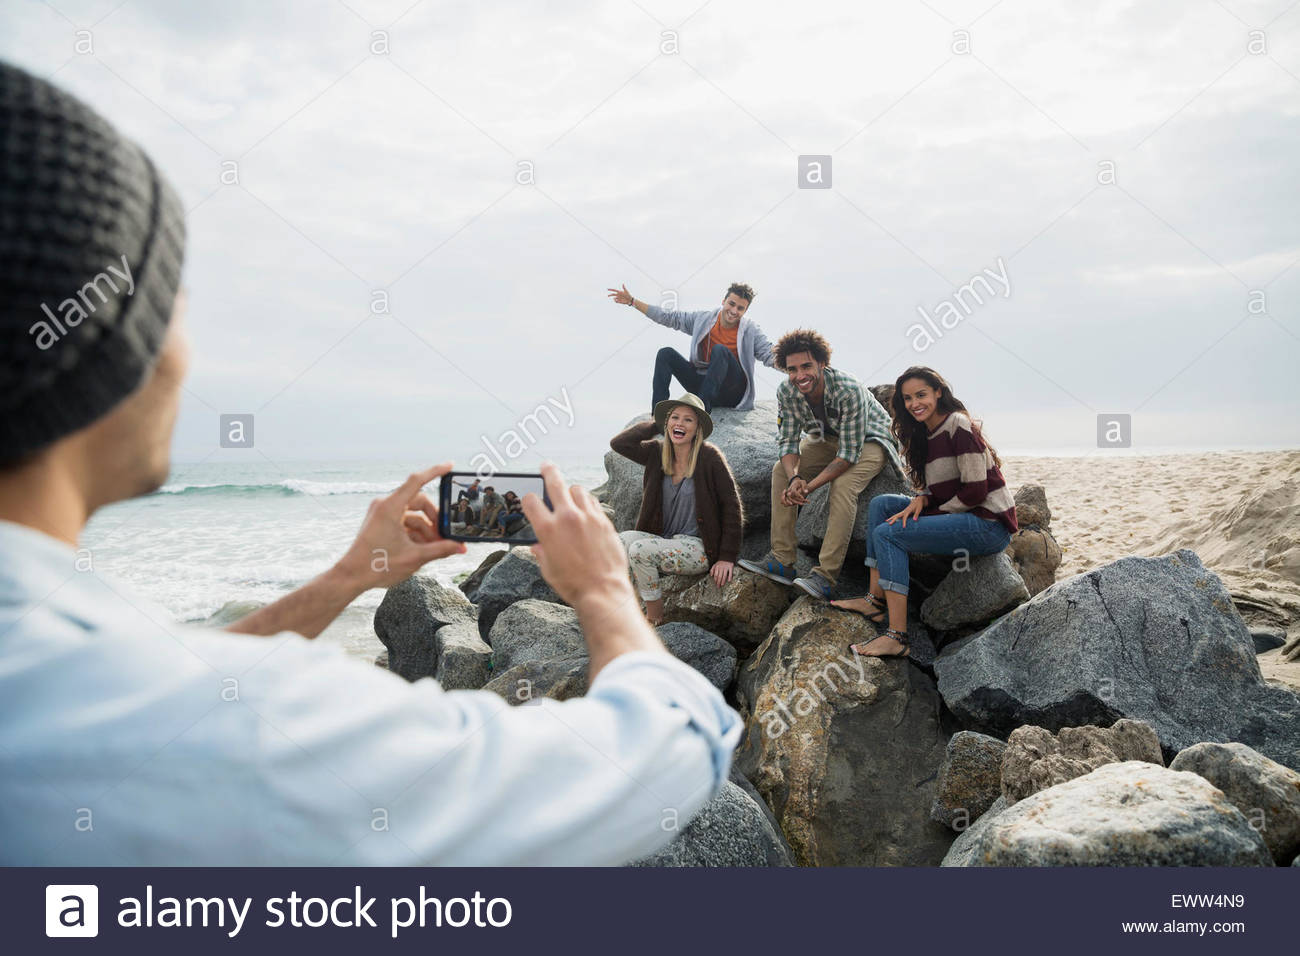 Friends posing for photograph on beach rocks - Stock Image